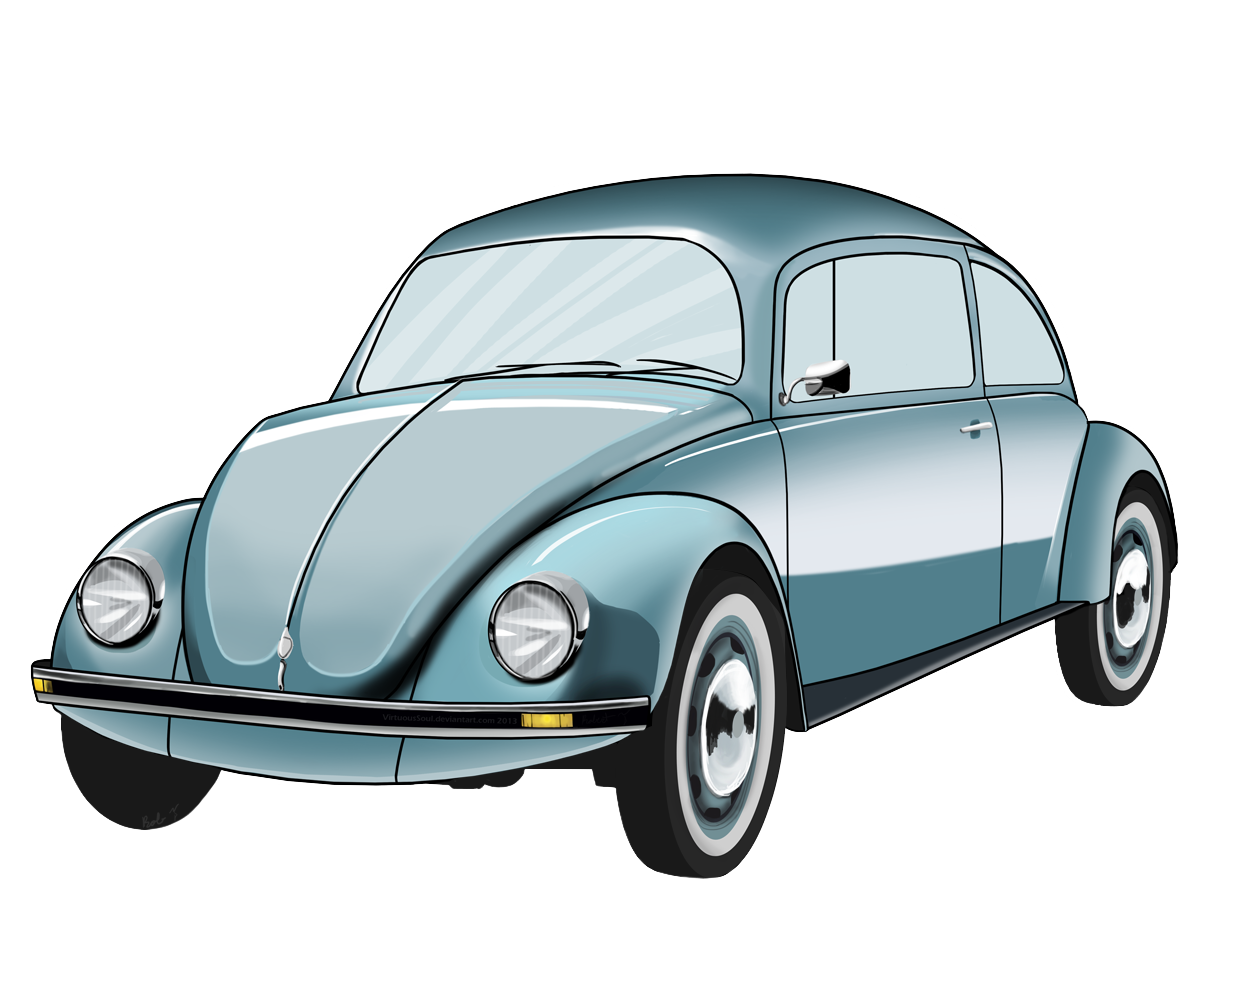 Volkswagon toy car clipart png transparent library Free Vw Bug Clipart, Download Free Clip Art, Free Clip Art ... png transparent library